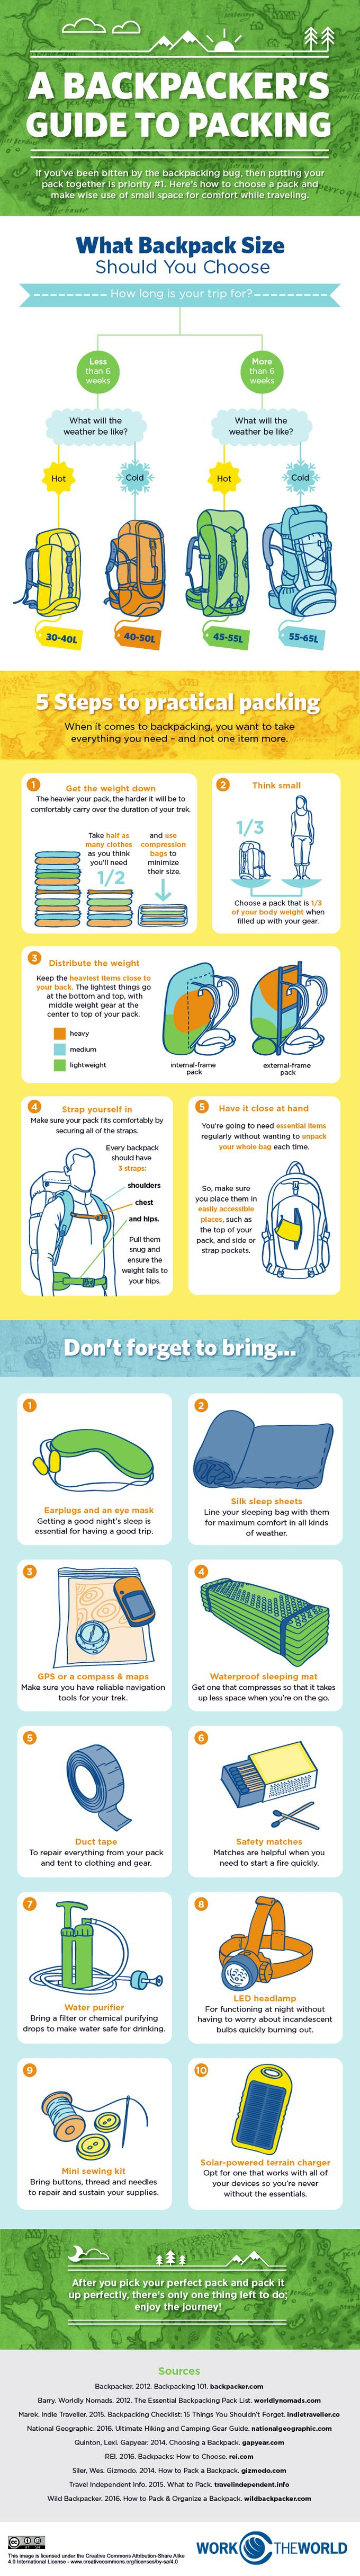 Super helpful! How to pack a backpack.